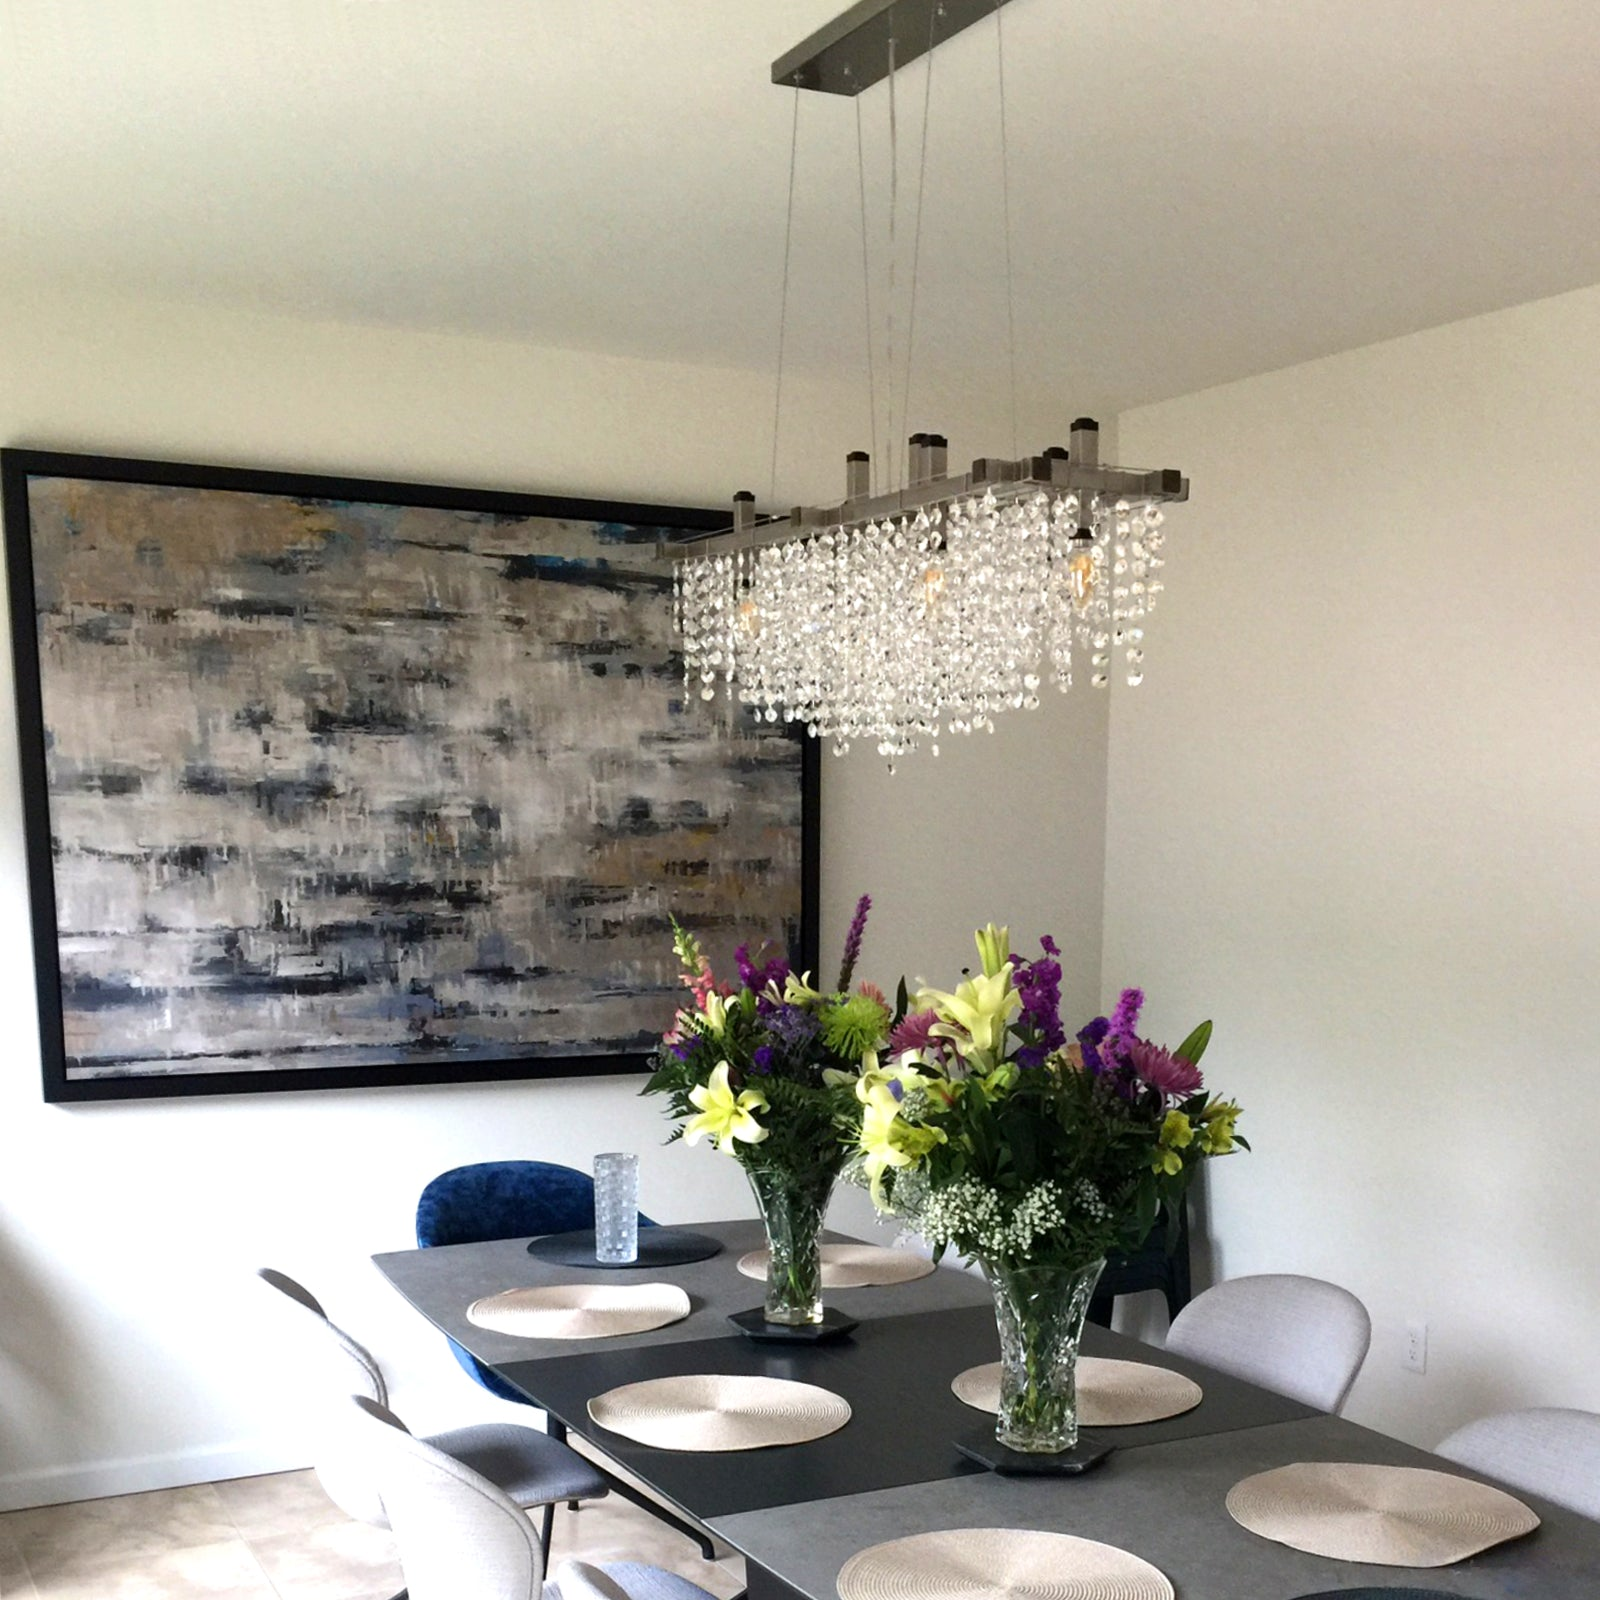 A Matrix Crystal Chandelier over a dining room table